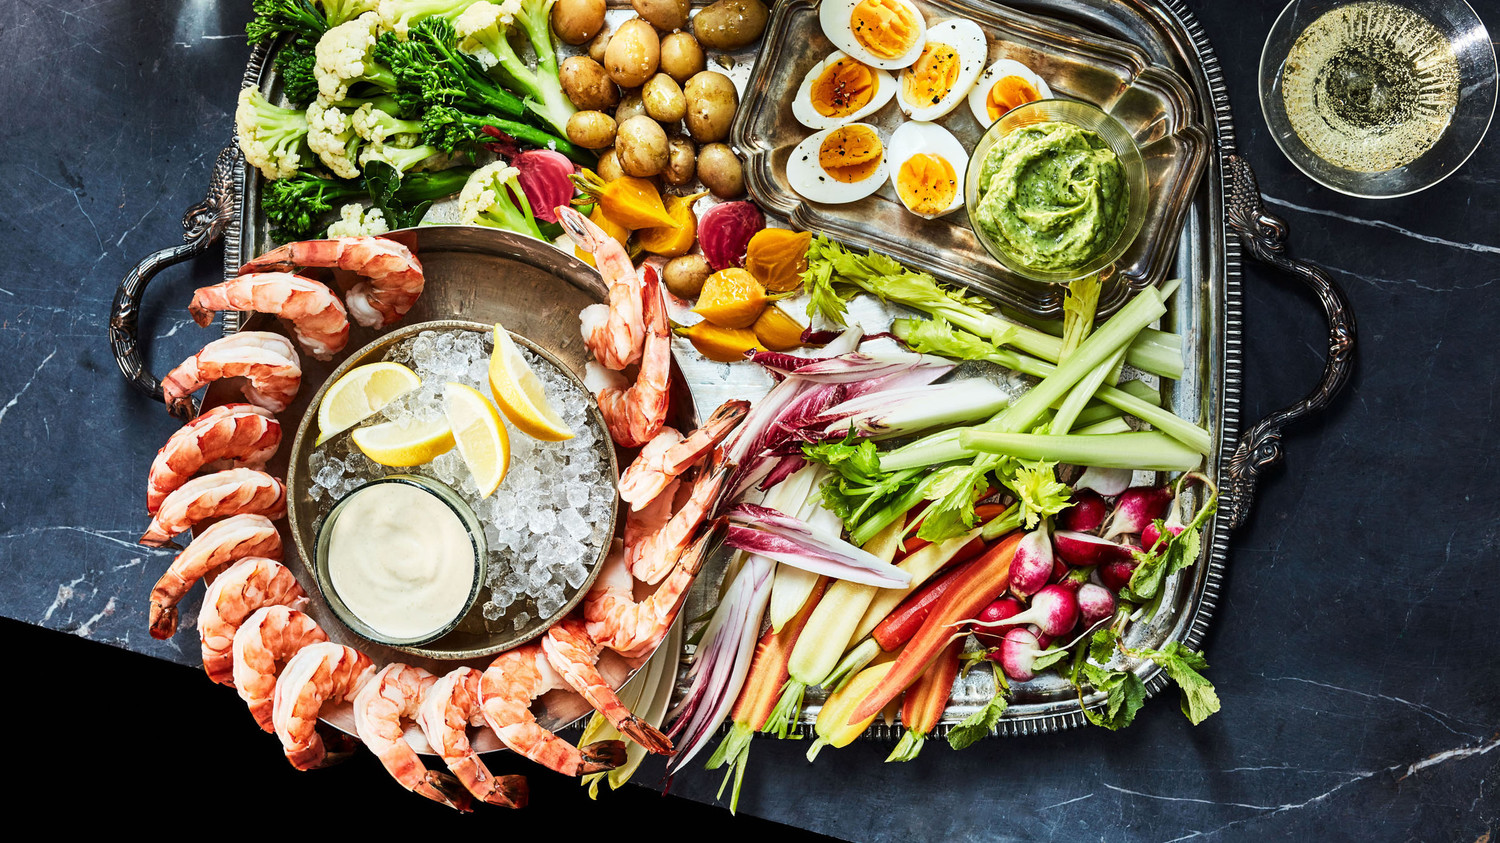 Shrimp And Crudite Platter With Two Sauces